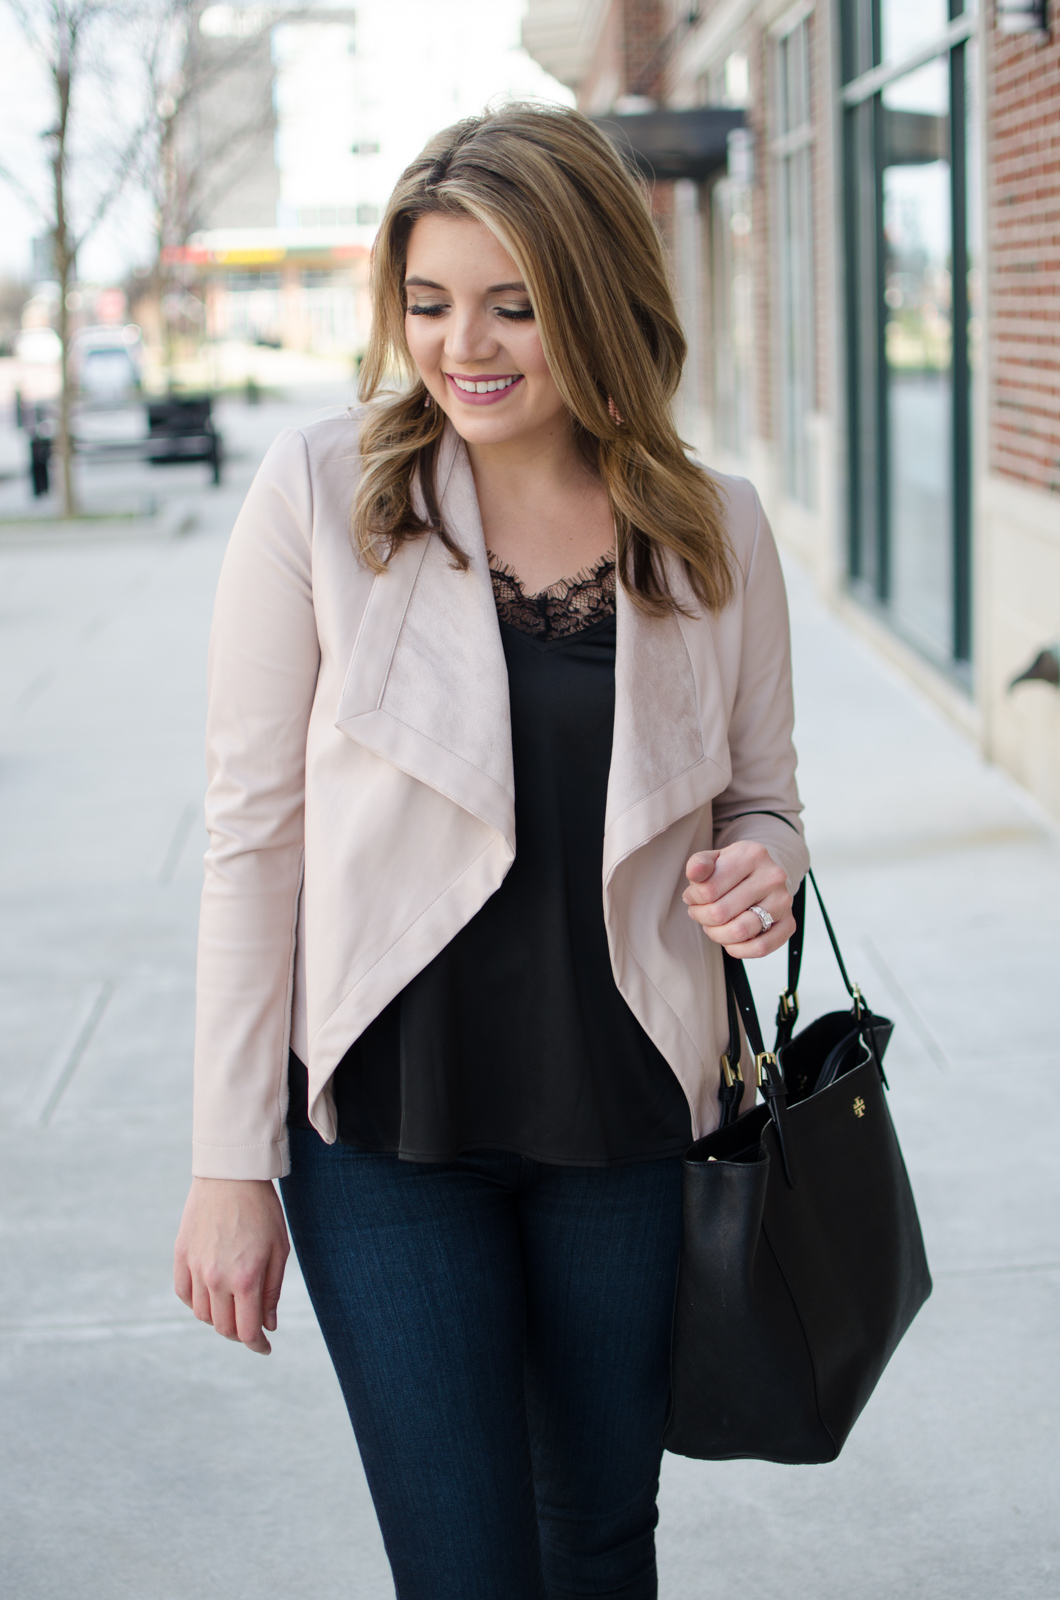 blush leather jacket, black lace camisole | Click through for more casual outfits or to shop this look! www.bylaurenm.com